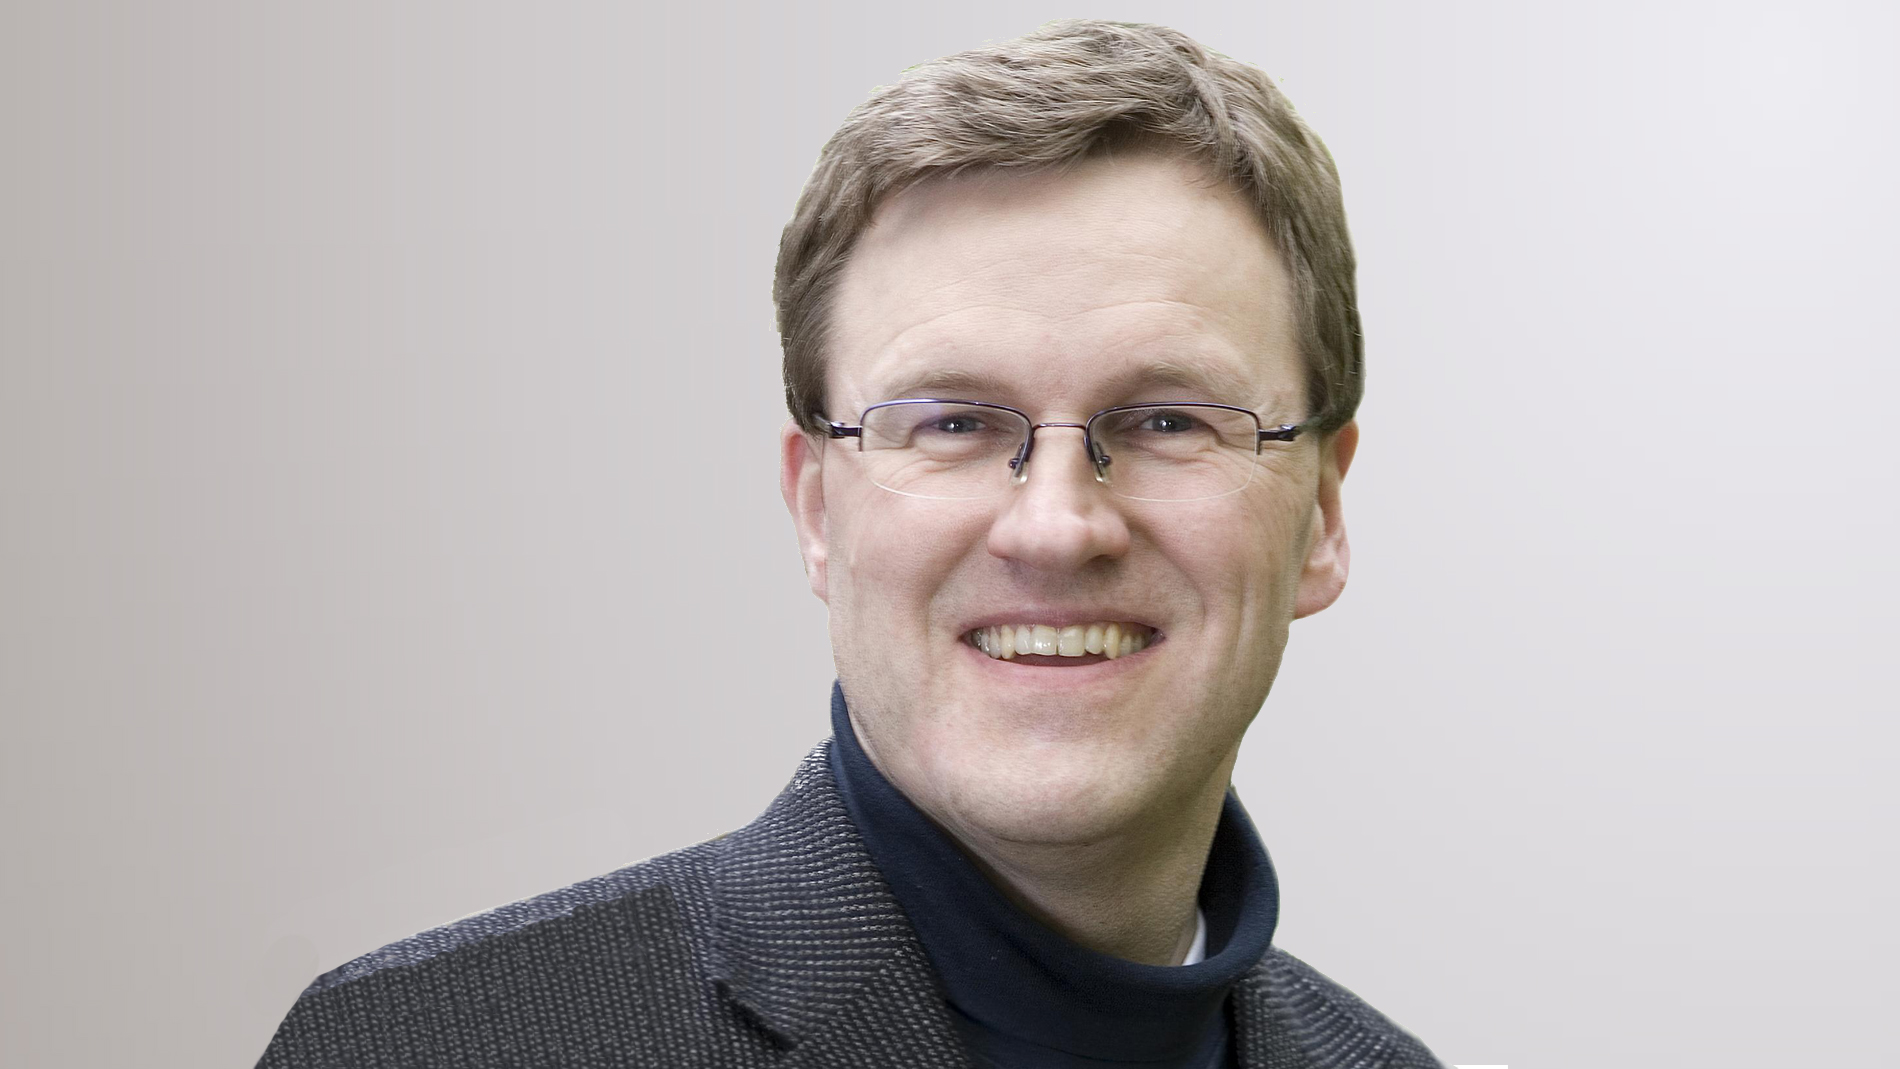 Prof. Dr. Hans-Günter Eckel, University of Rostock, Germany